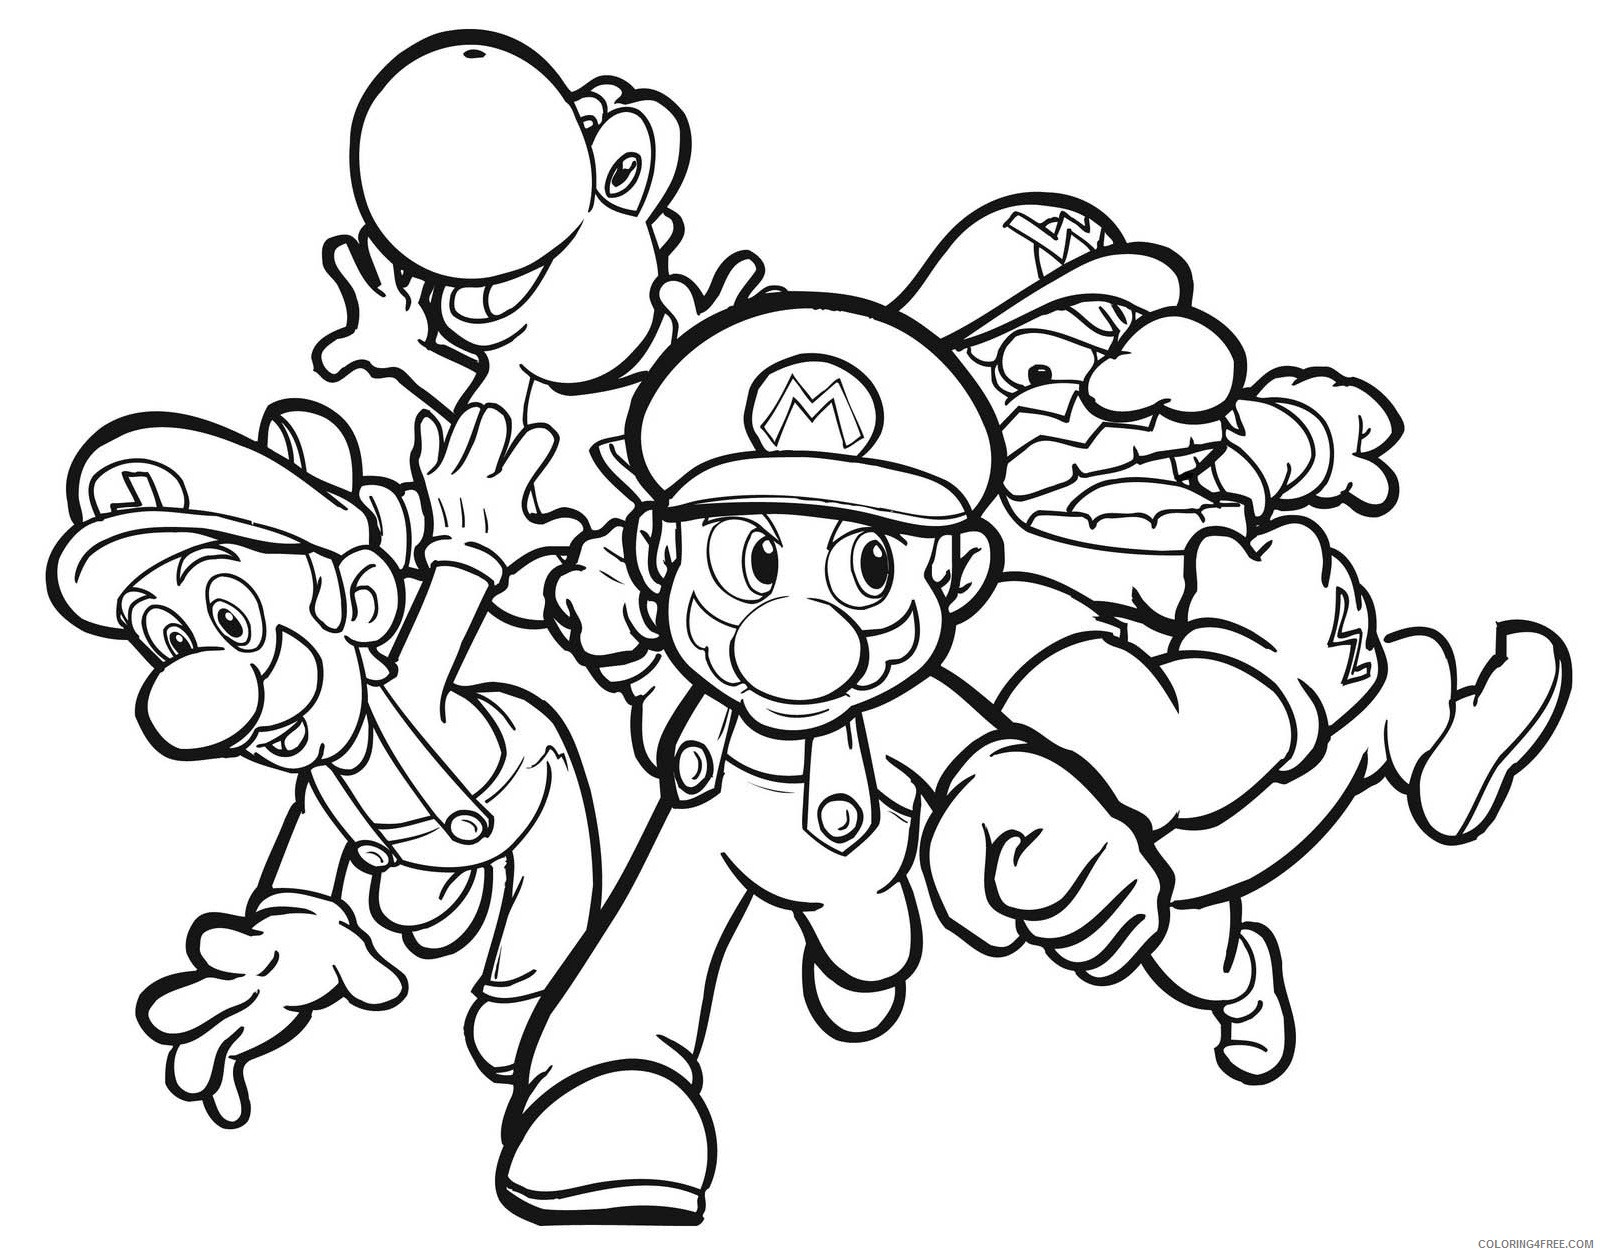 mario kart coloring pages to print Coloring4free ...